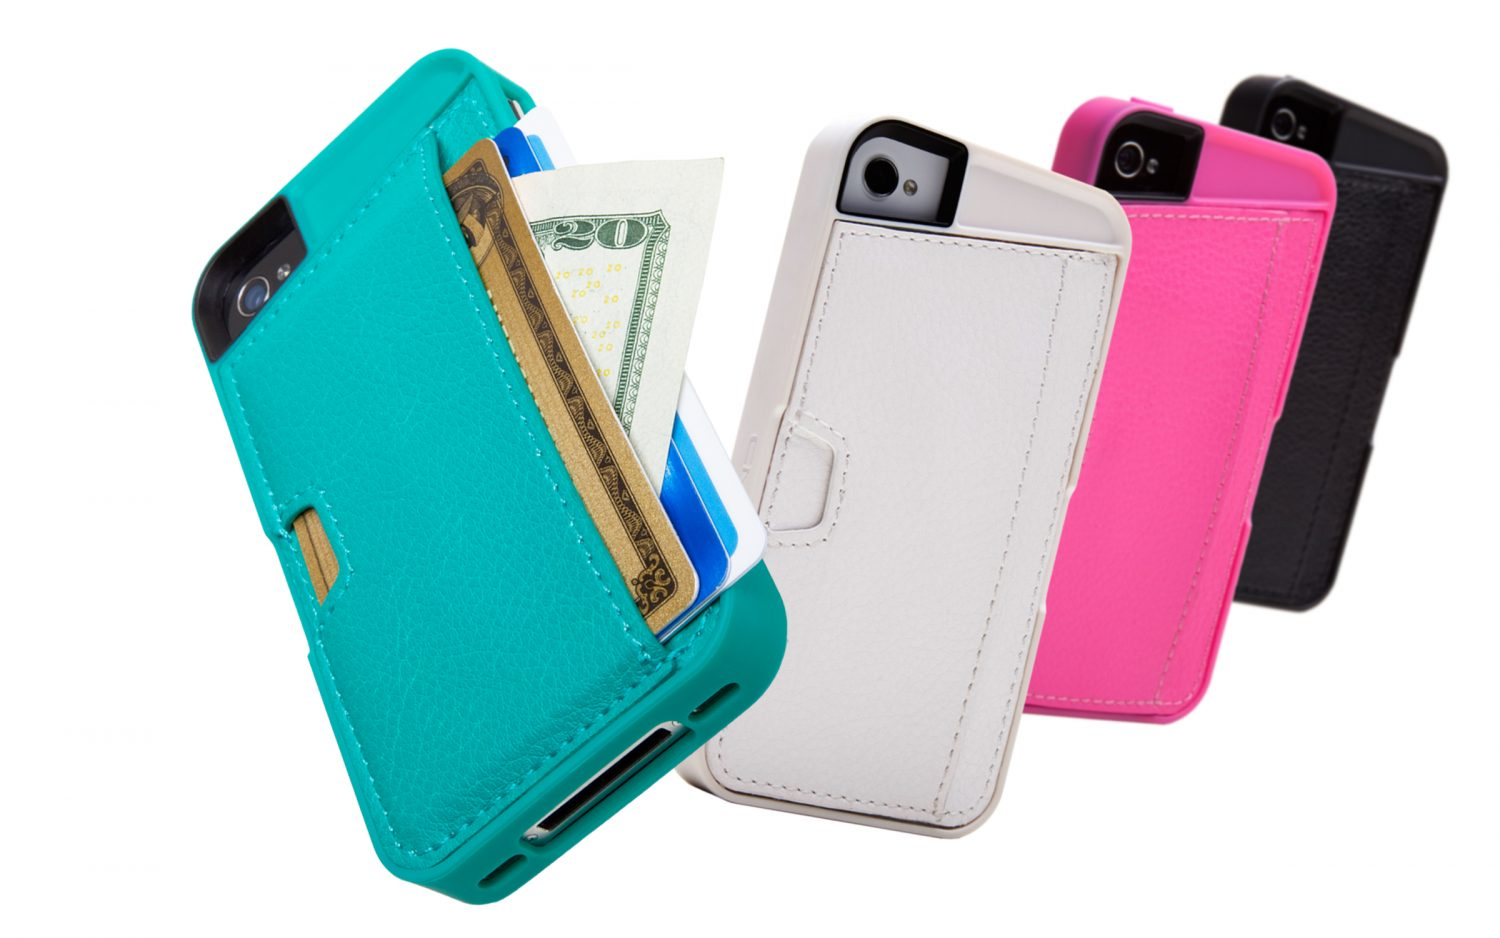 CM4s-case-for-the-iPhone-44S-doubles-as-a-wallet---lessens-the-bulk-in-your-pockets